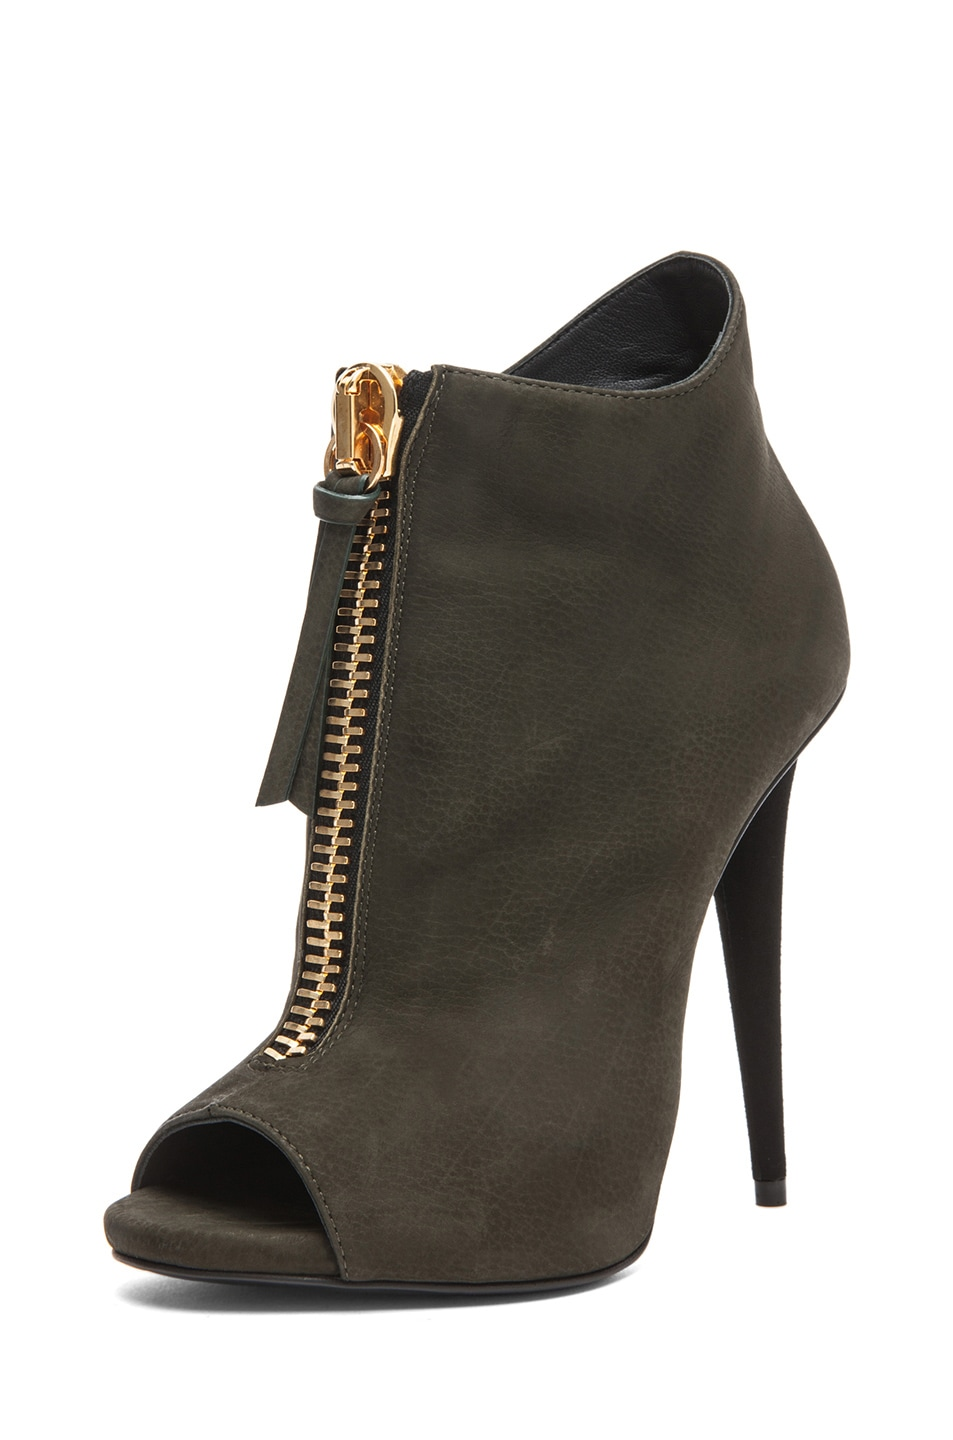 Image 2 of Giuseppe Zanotti Suede Zip Up Ankle Boot in Olive